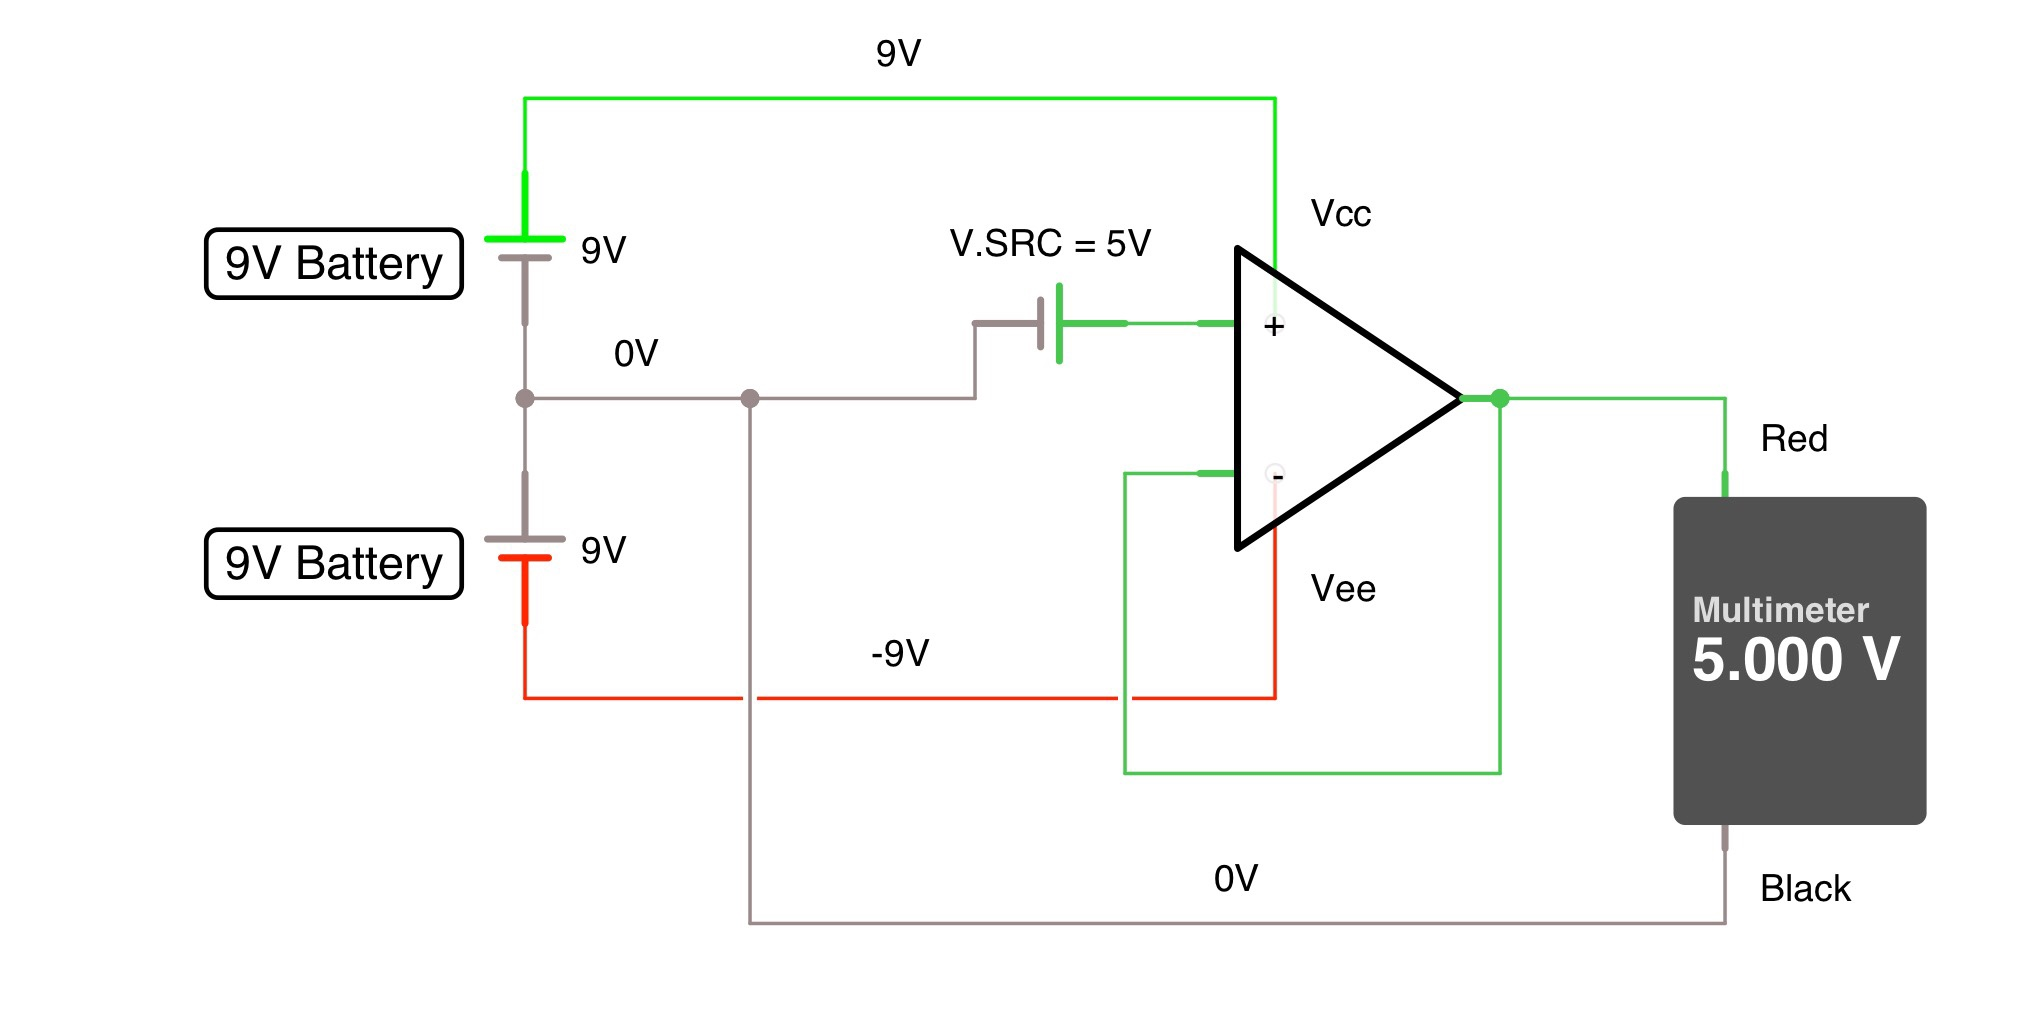 Op Amps grounds and input supply - Page 1